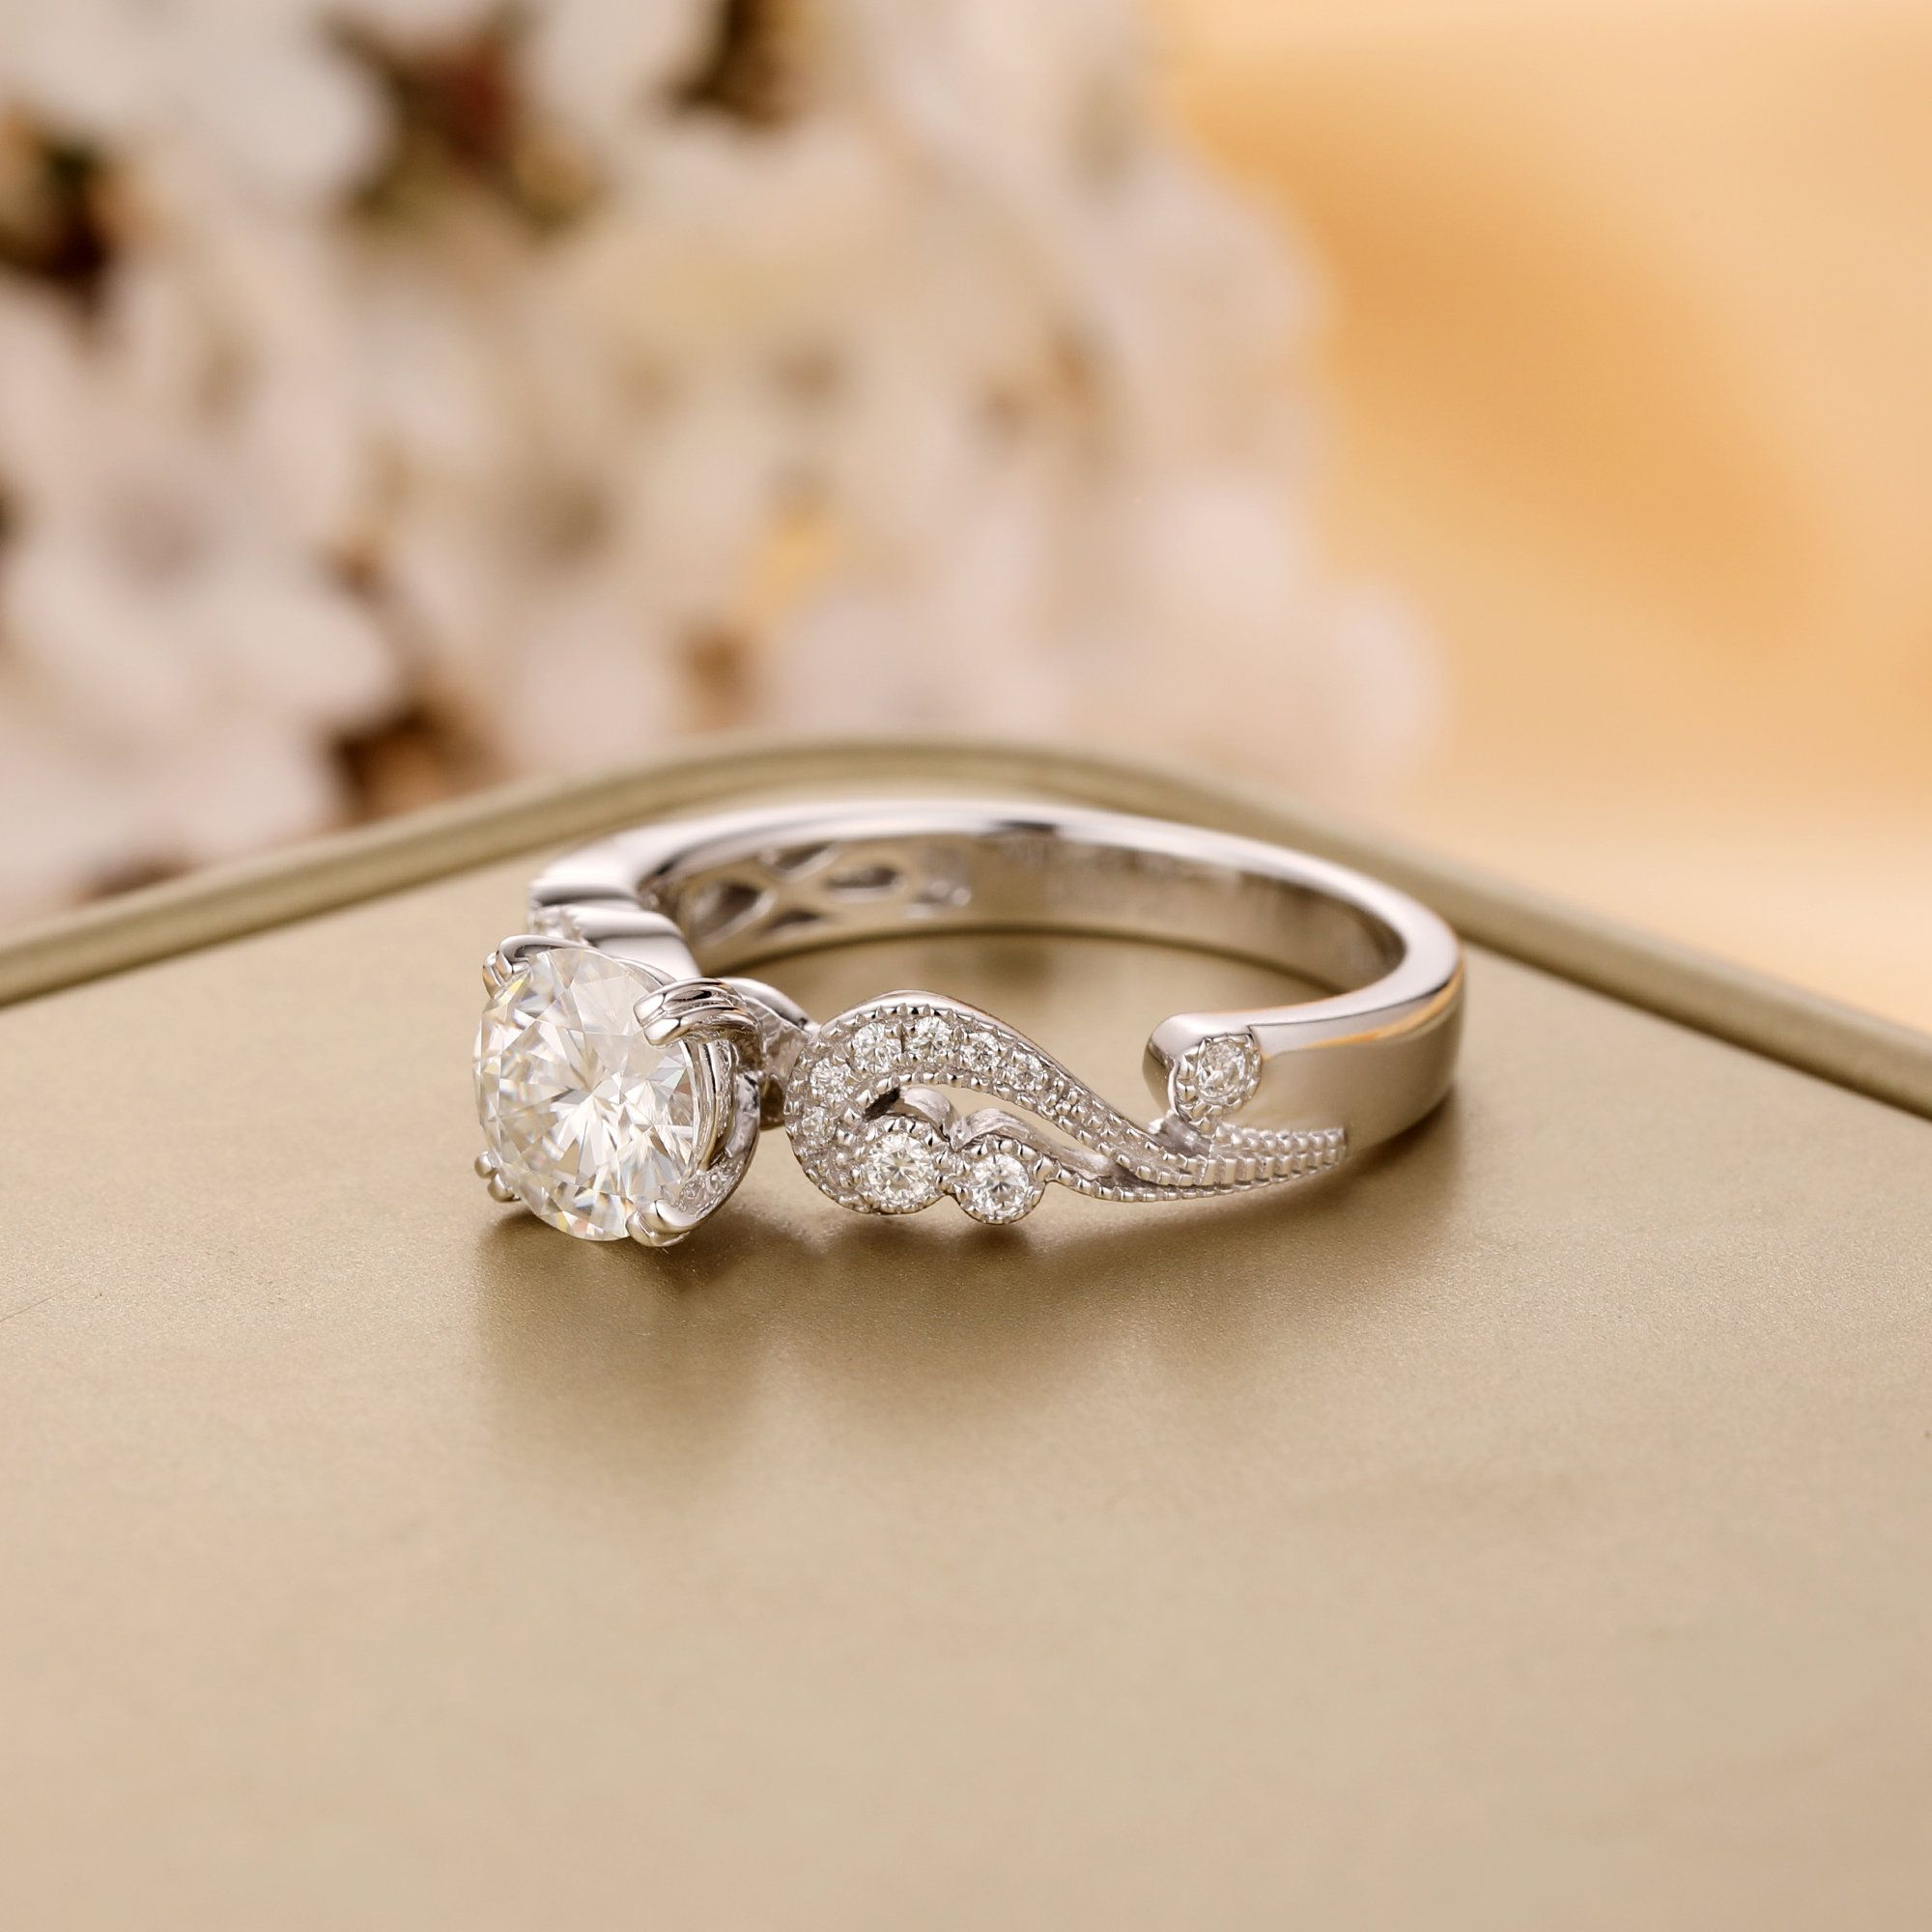 Vintage Style 1CT Brilliant Round Cut 1.0CT Moissanite Center,14K Solid Gold Engagement Ring Romantic Style Female Ring Wedding Ring Gift